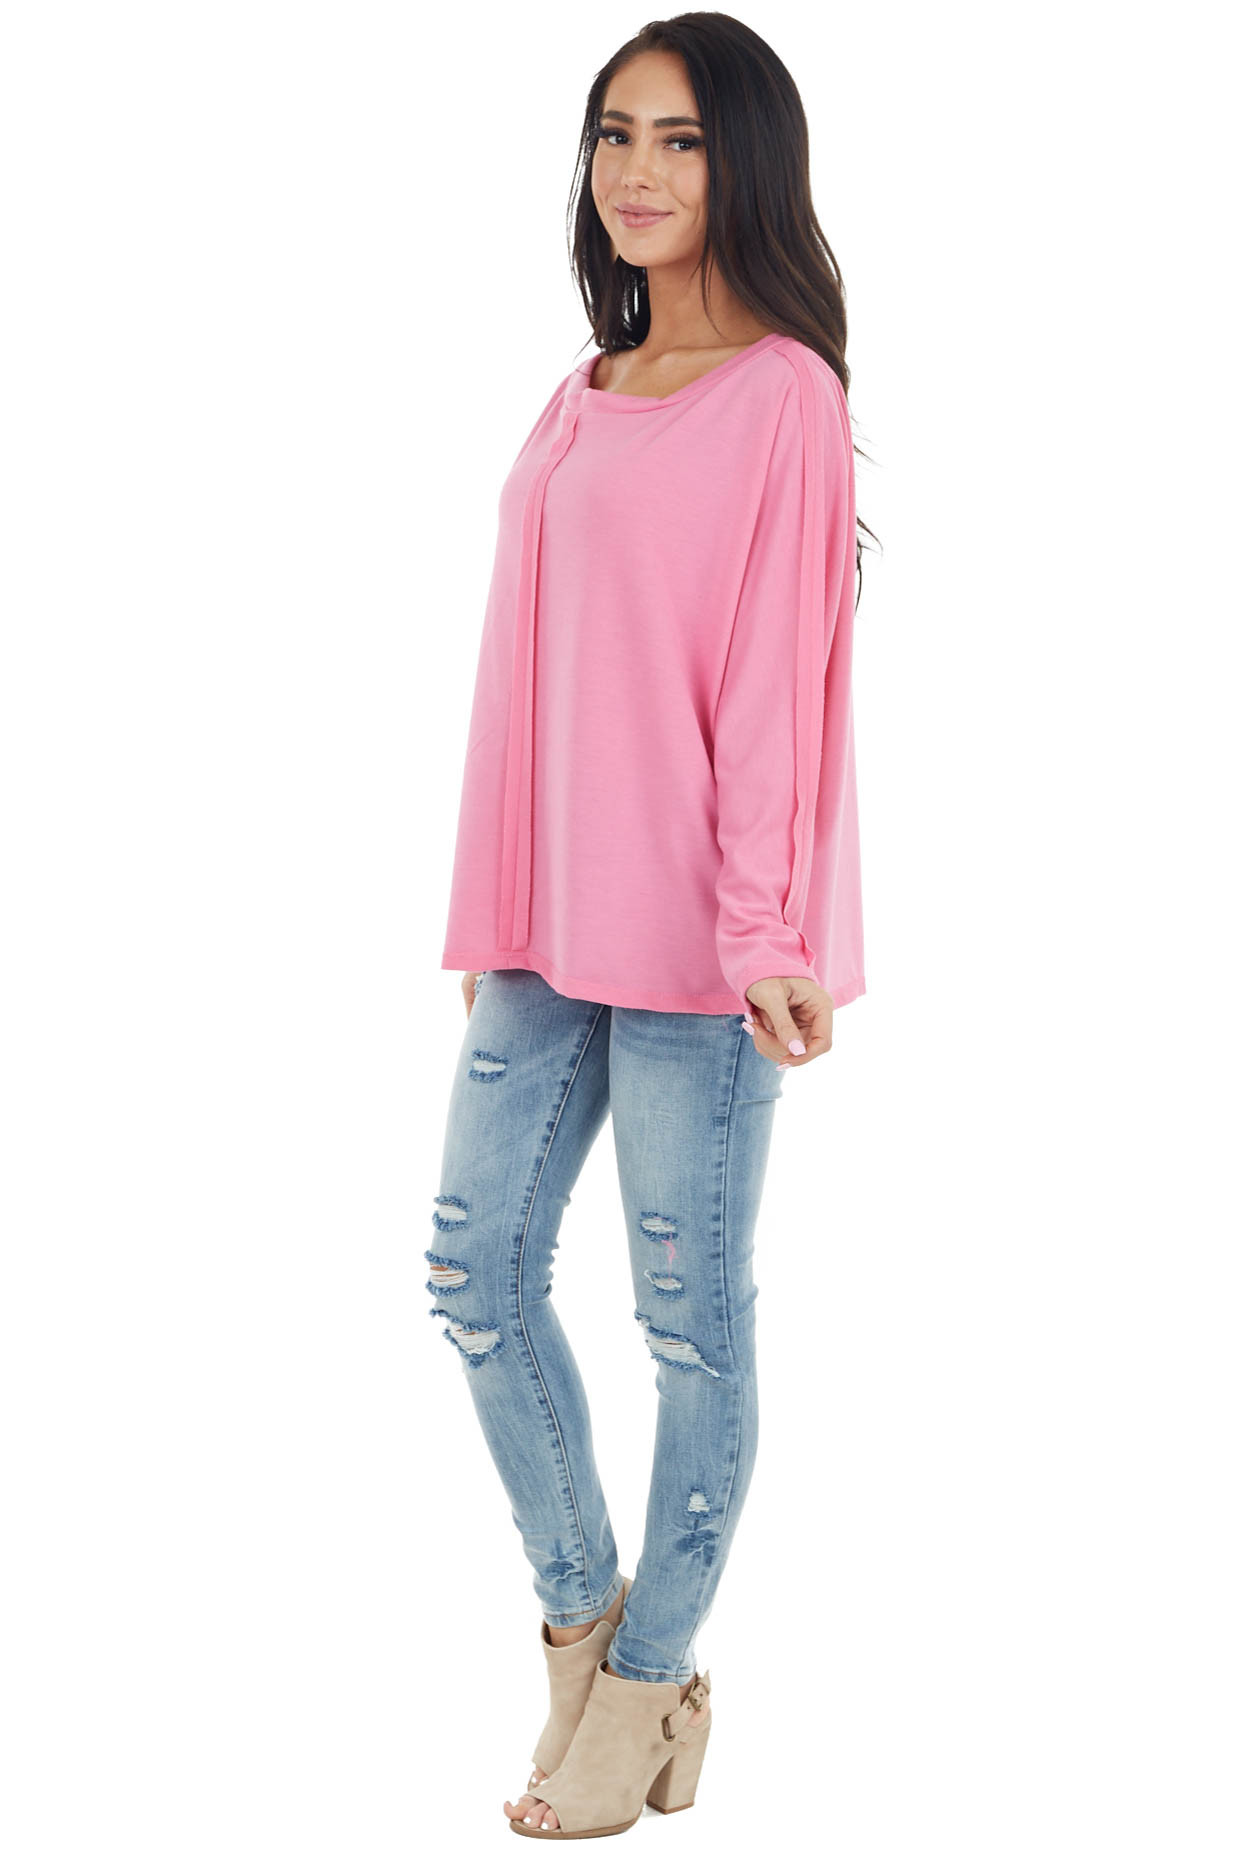 Hot Pink Long Sleeve Knit Top with Raw Seam Details